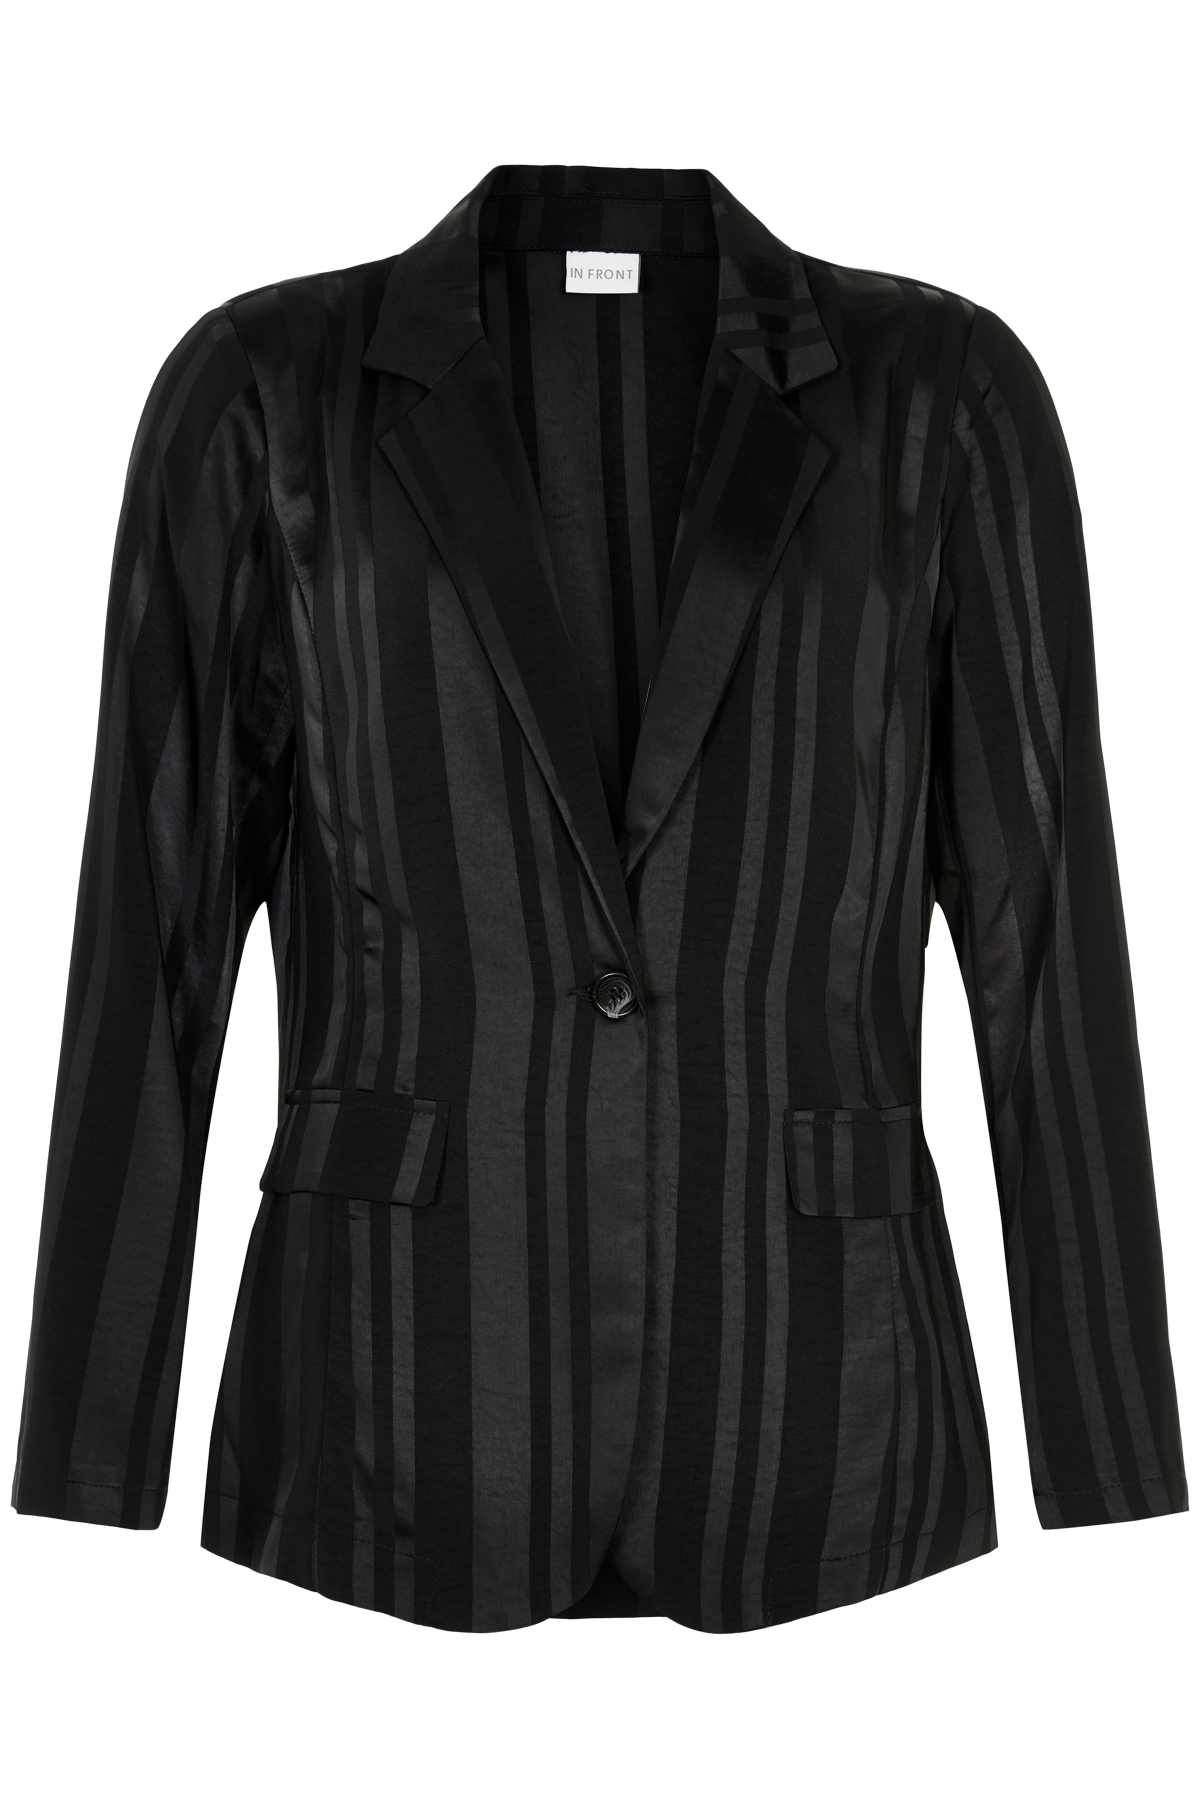 Image of   IN FRONT MIRA BLAZER 13572 (Black 999, L)